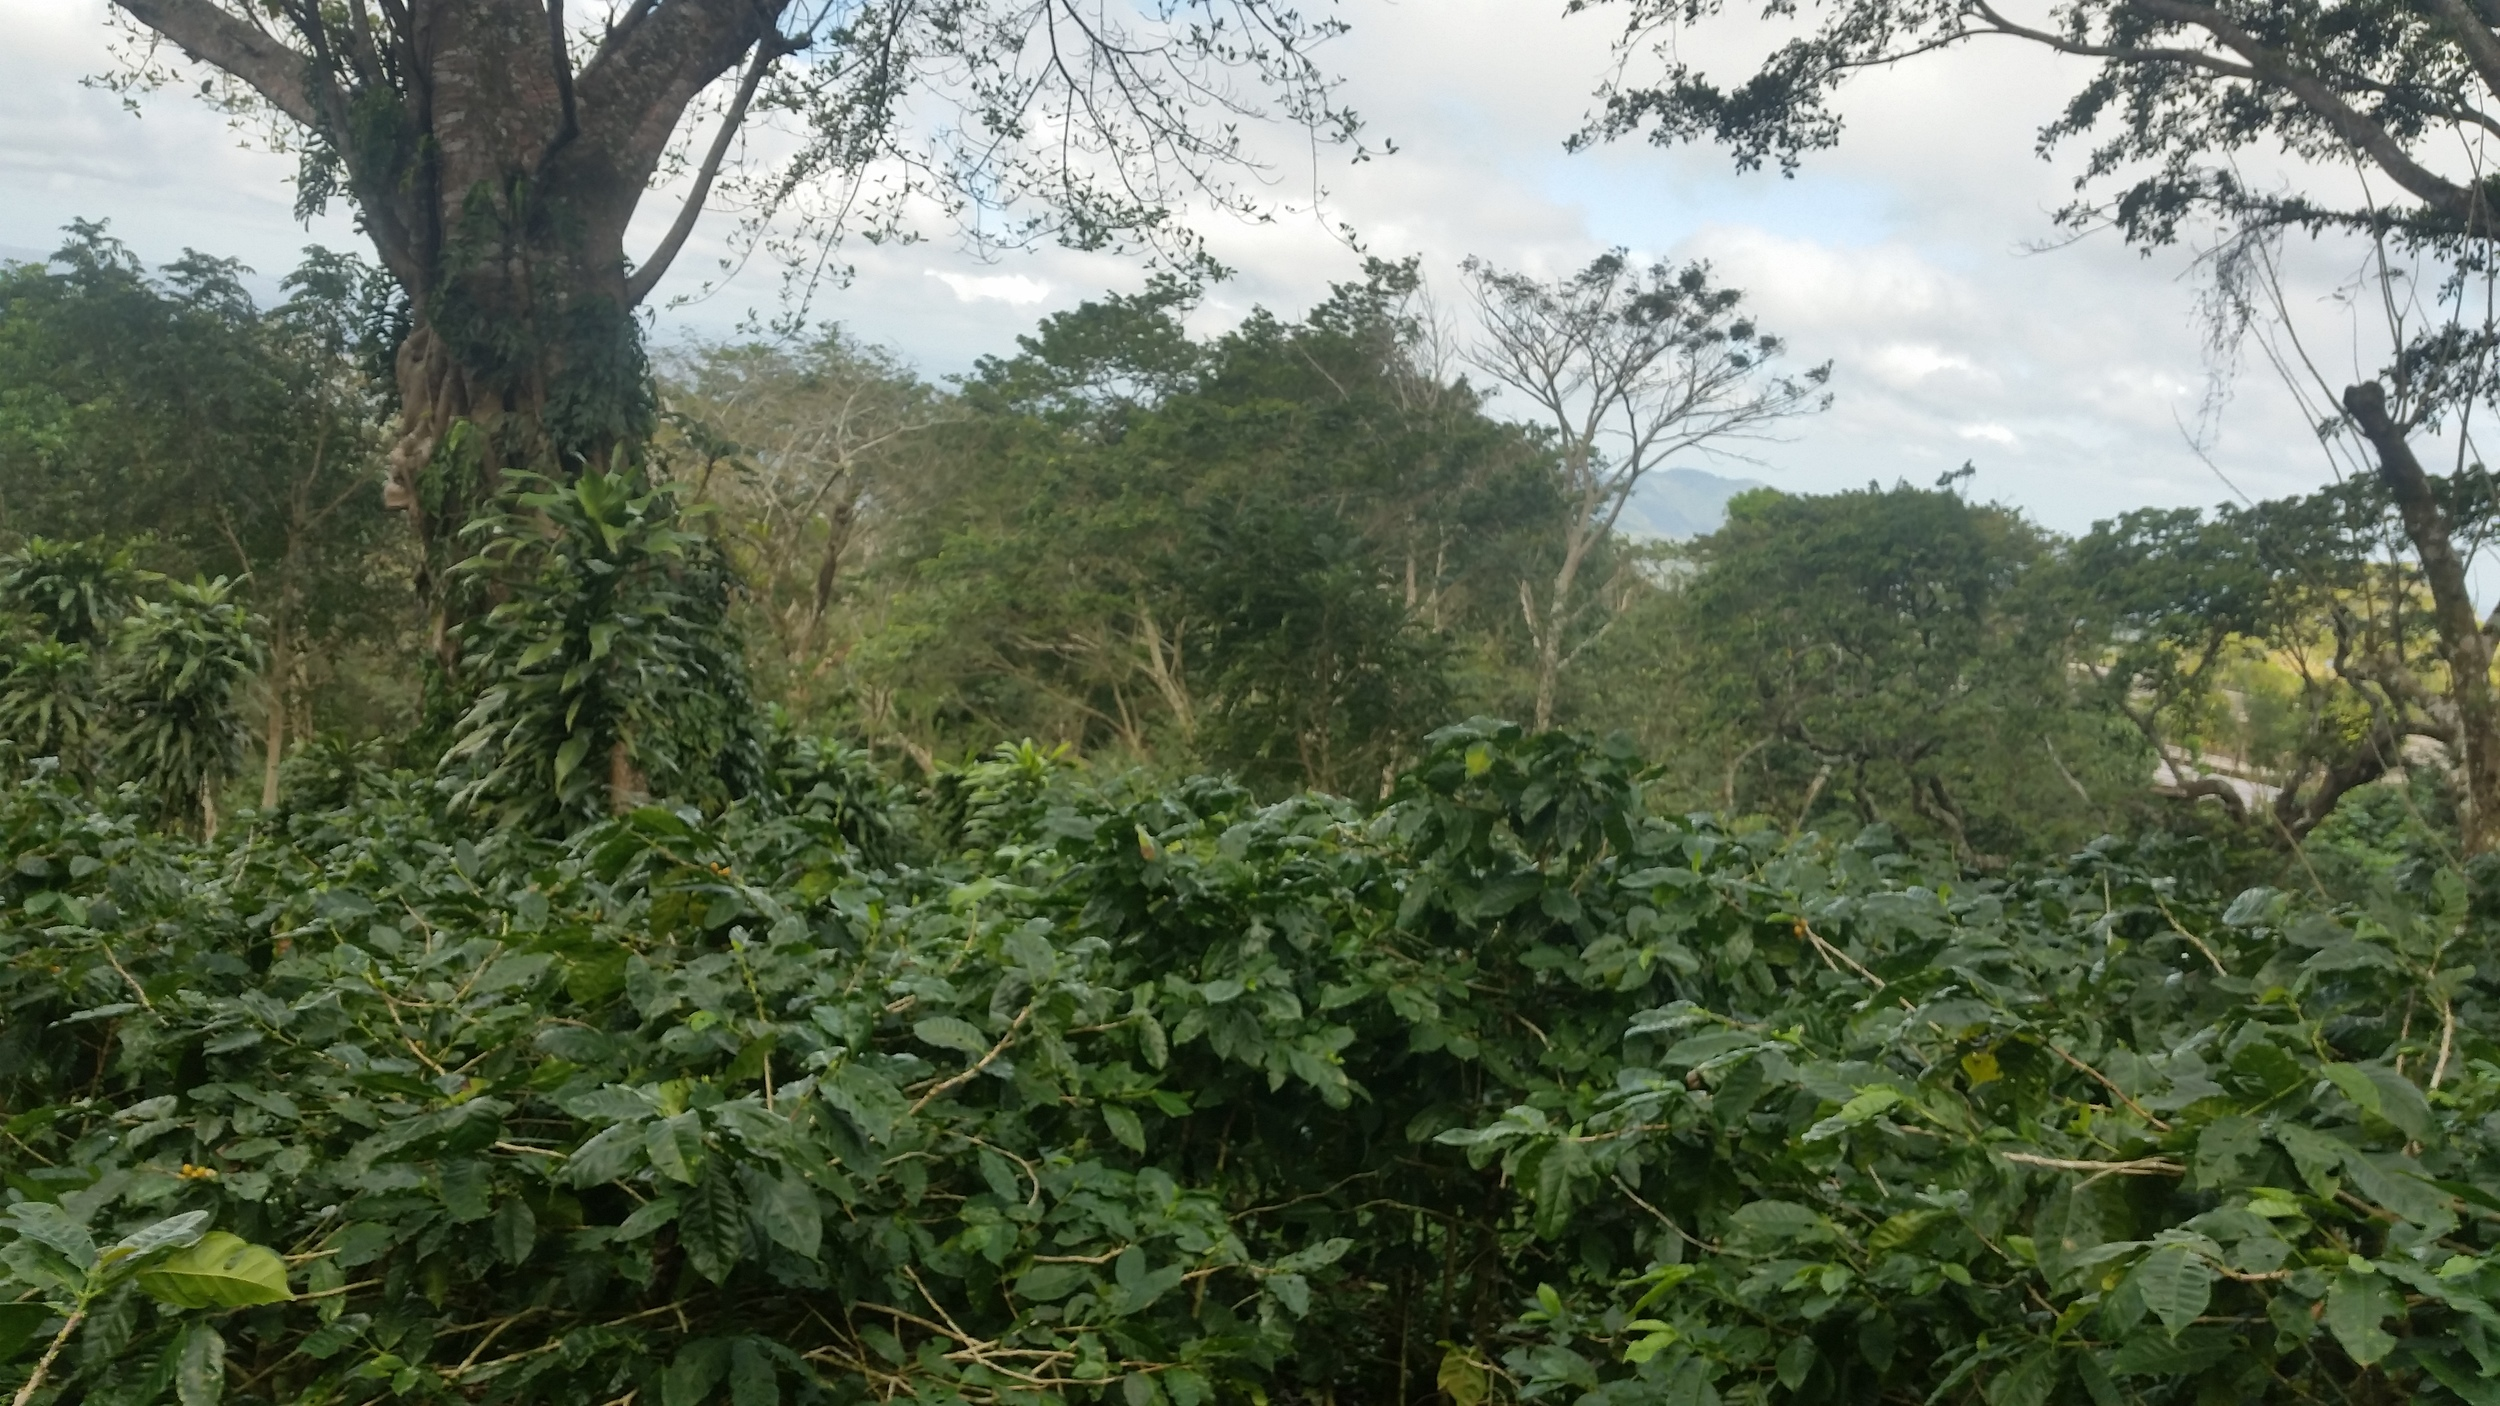 Coffee plants at Cafe las Flores, Mombacho, Nicaragua